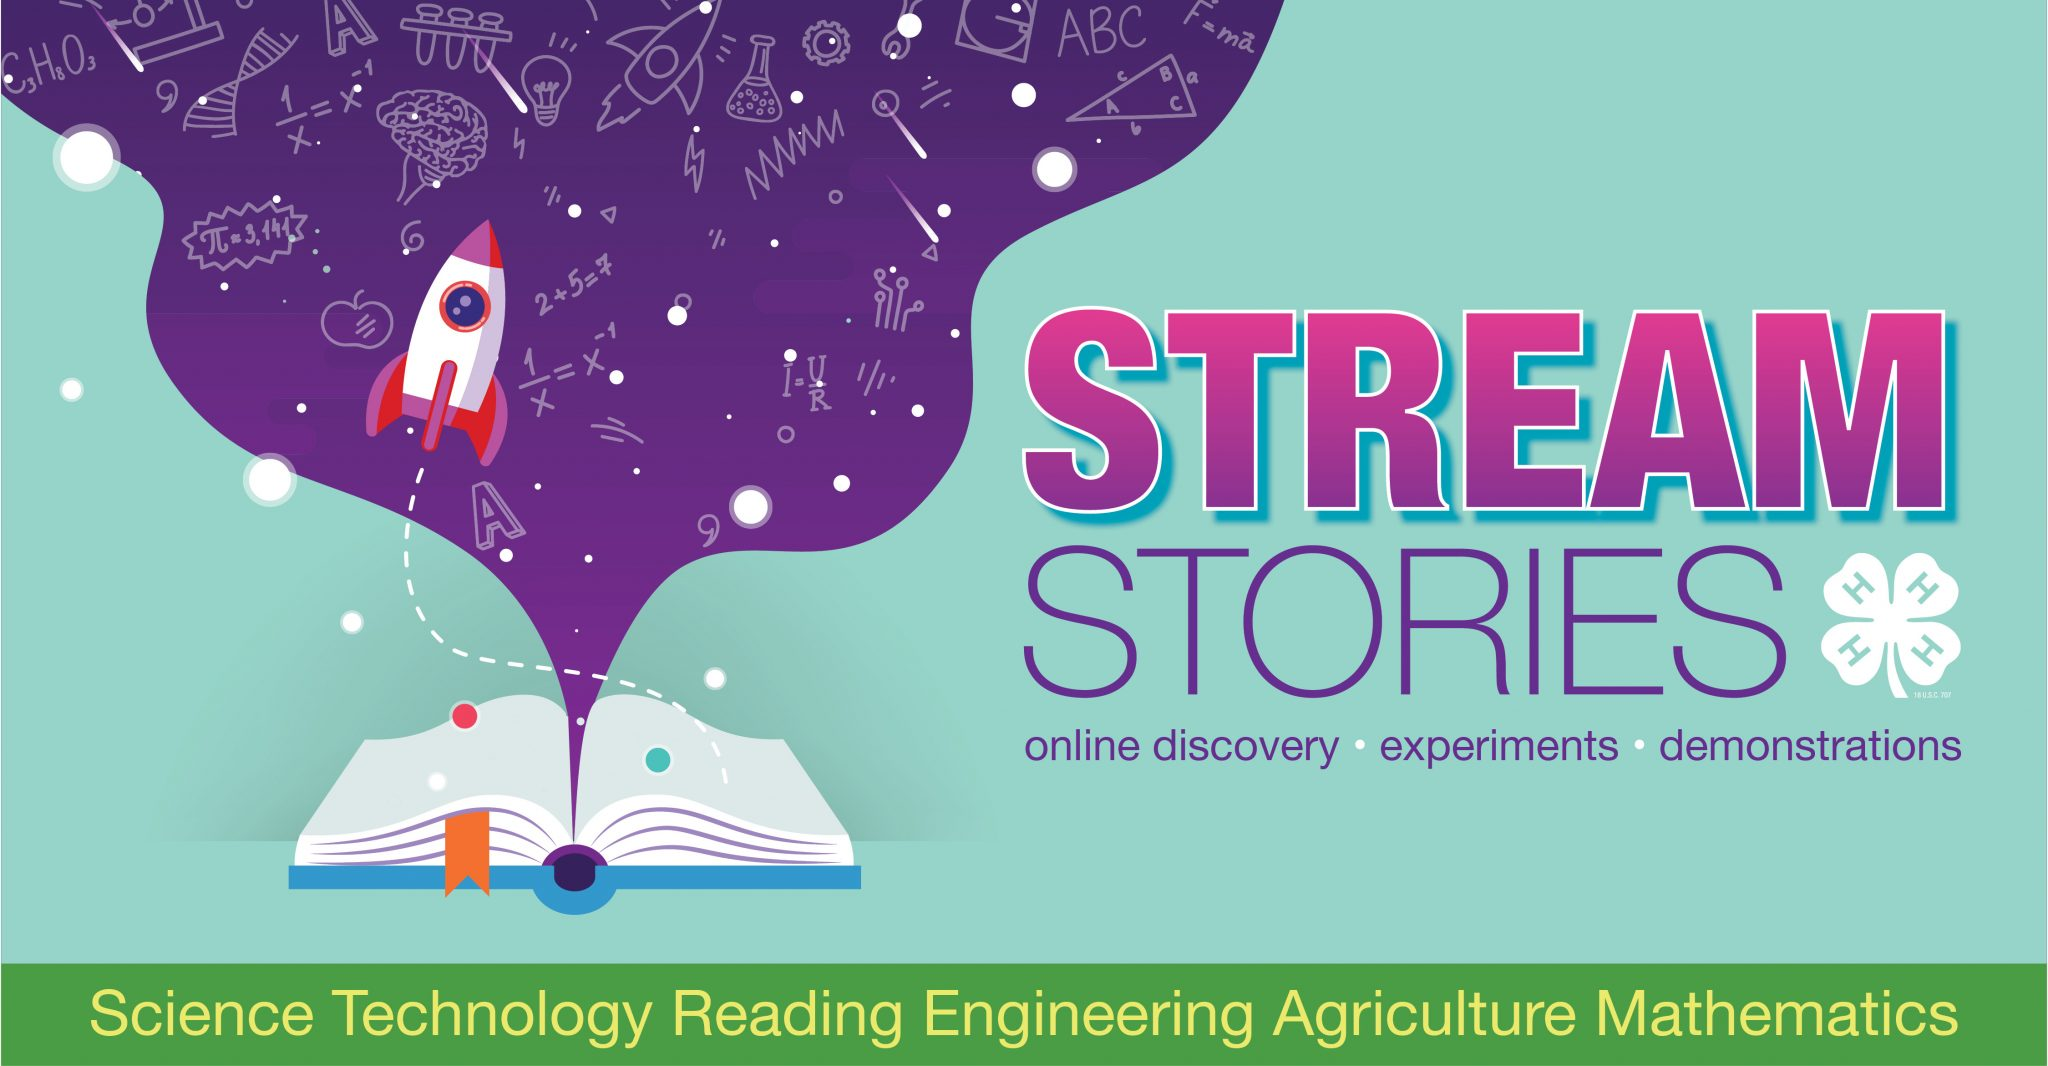 Illustration of an open book with rocket and STEM symbols flowing up out of it. Text: STREAM Stories, online discovery, experiments, demonstrations. Science Technology, Reading, Engineering, Agriculture, Mathematics